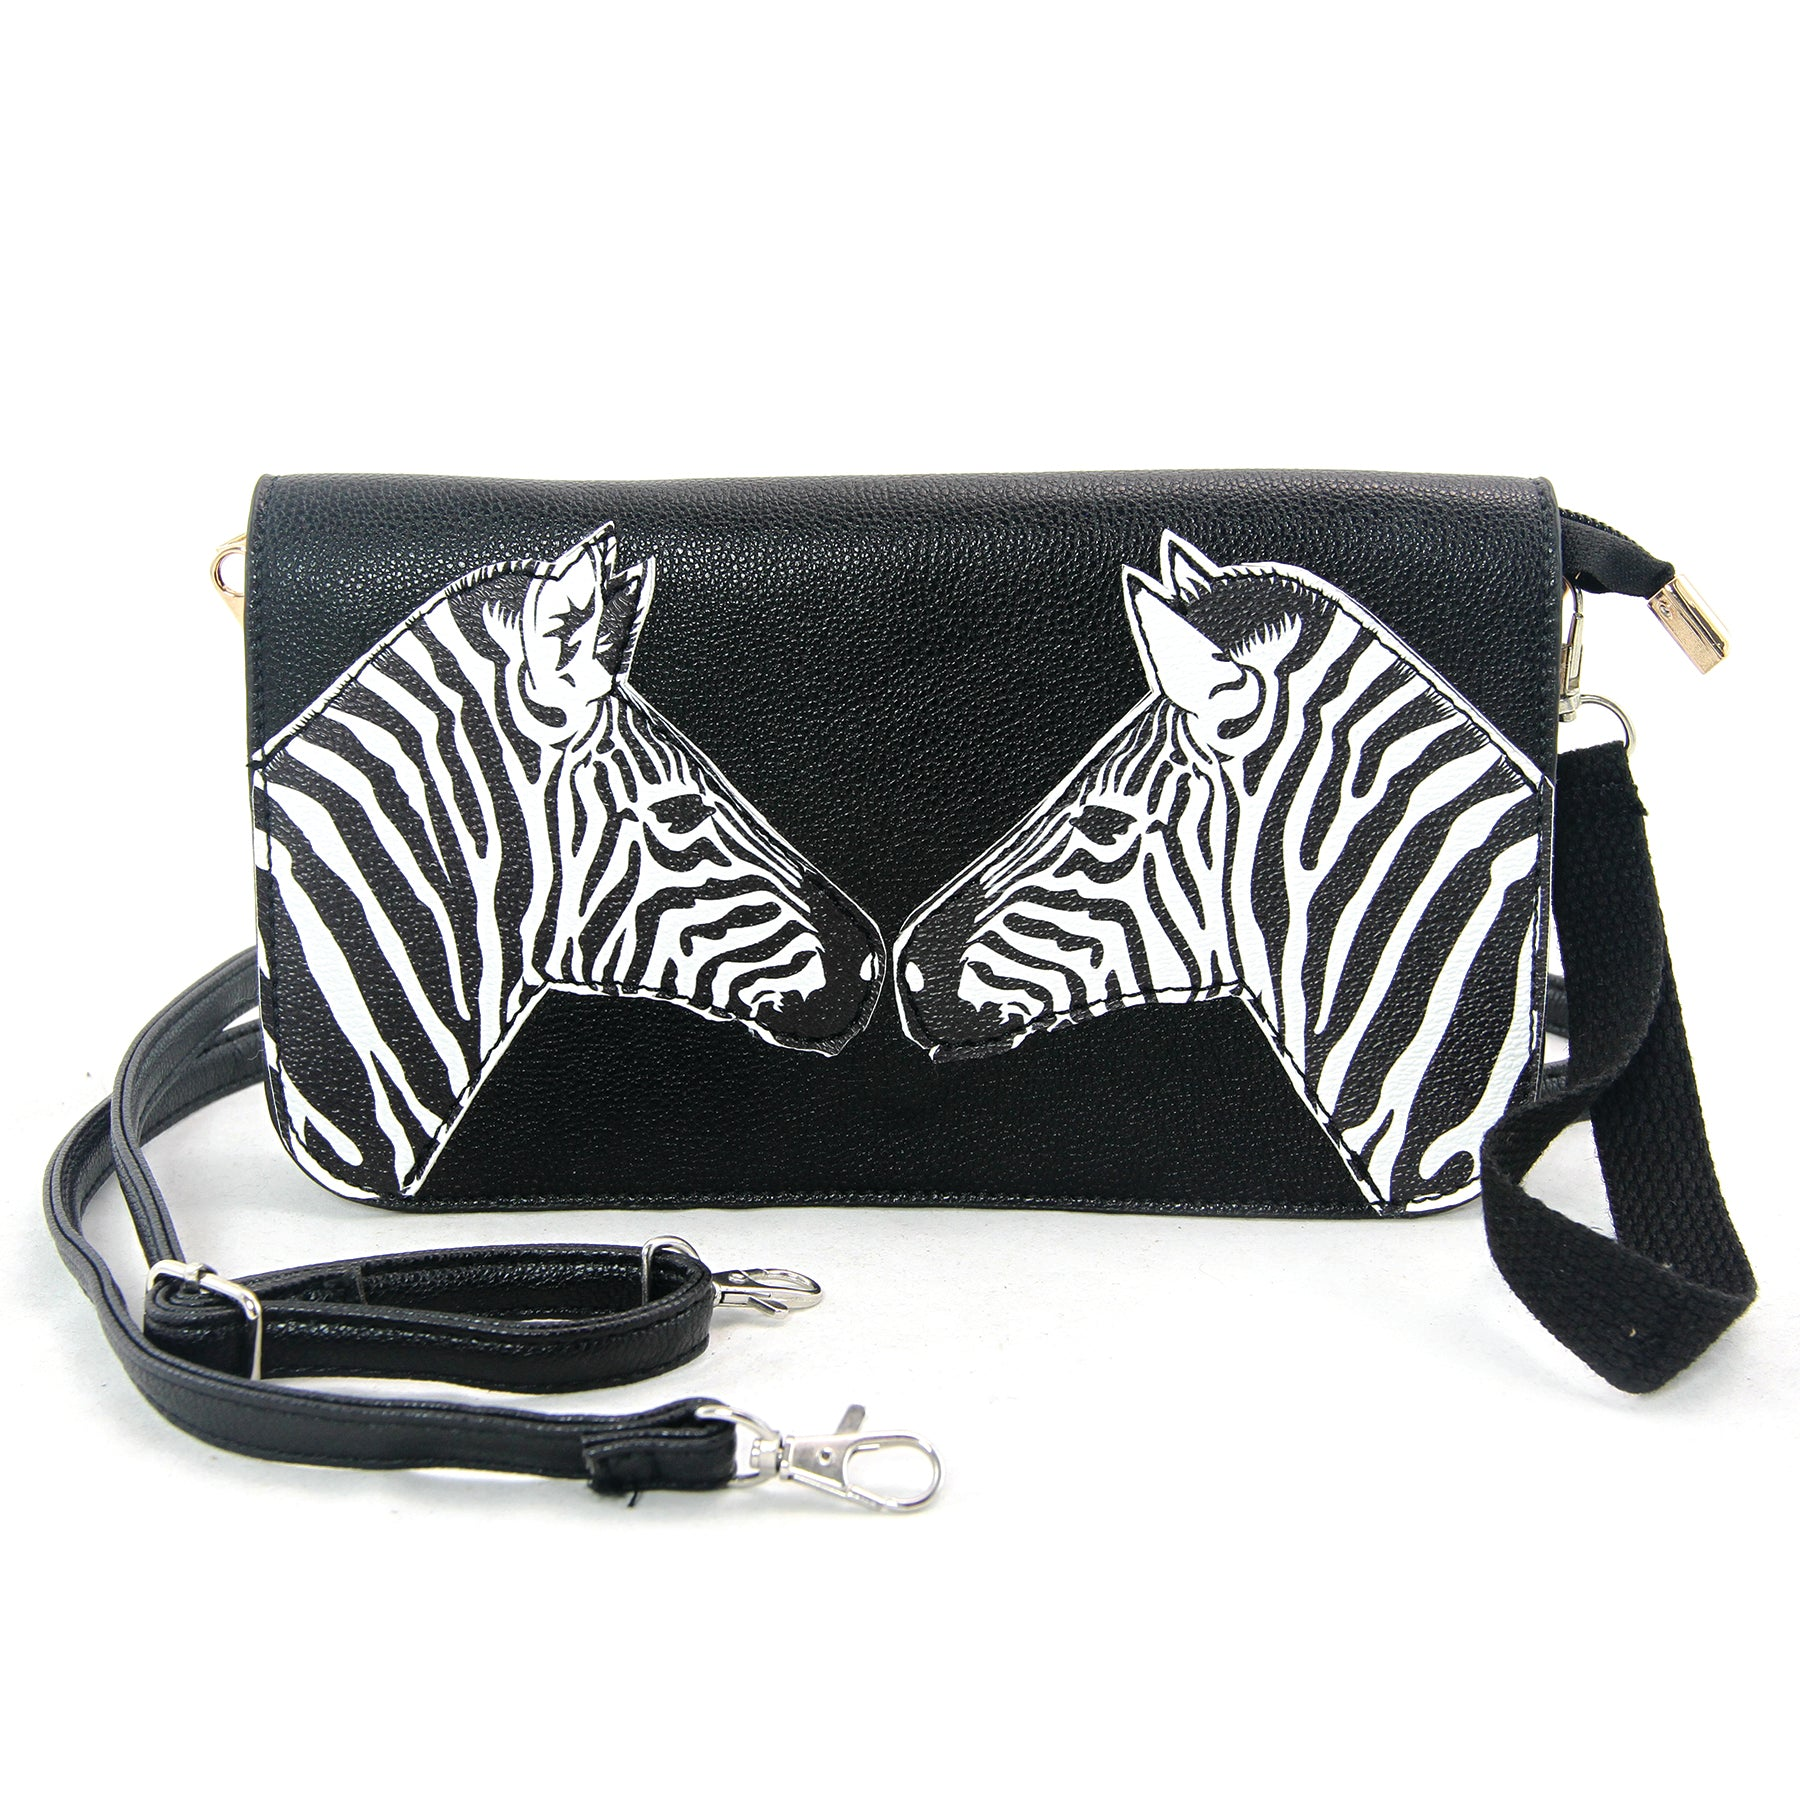 Mirrored Zebras Clutch in Vinyl Material front view